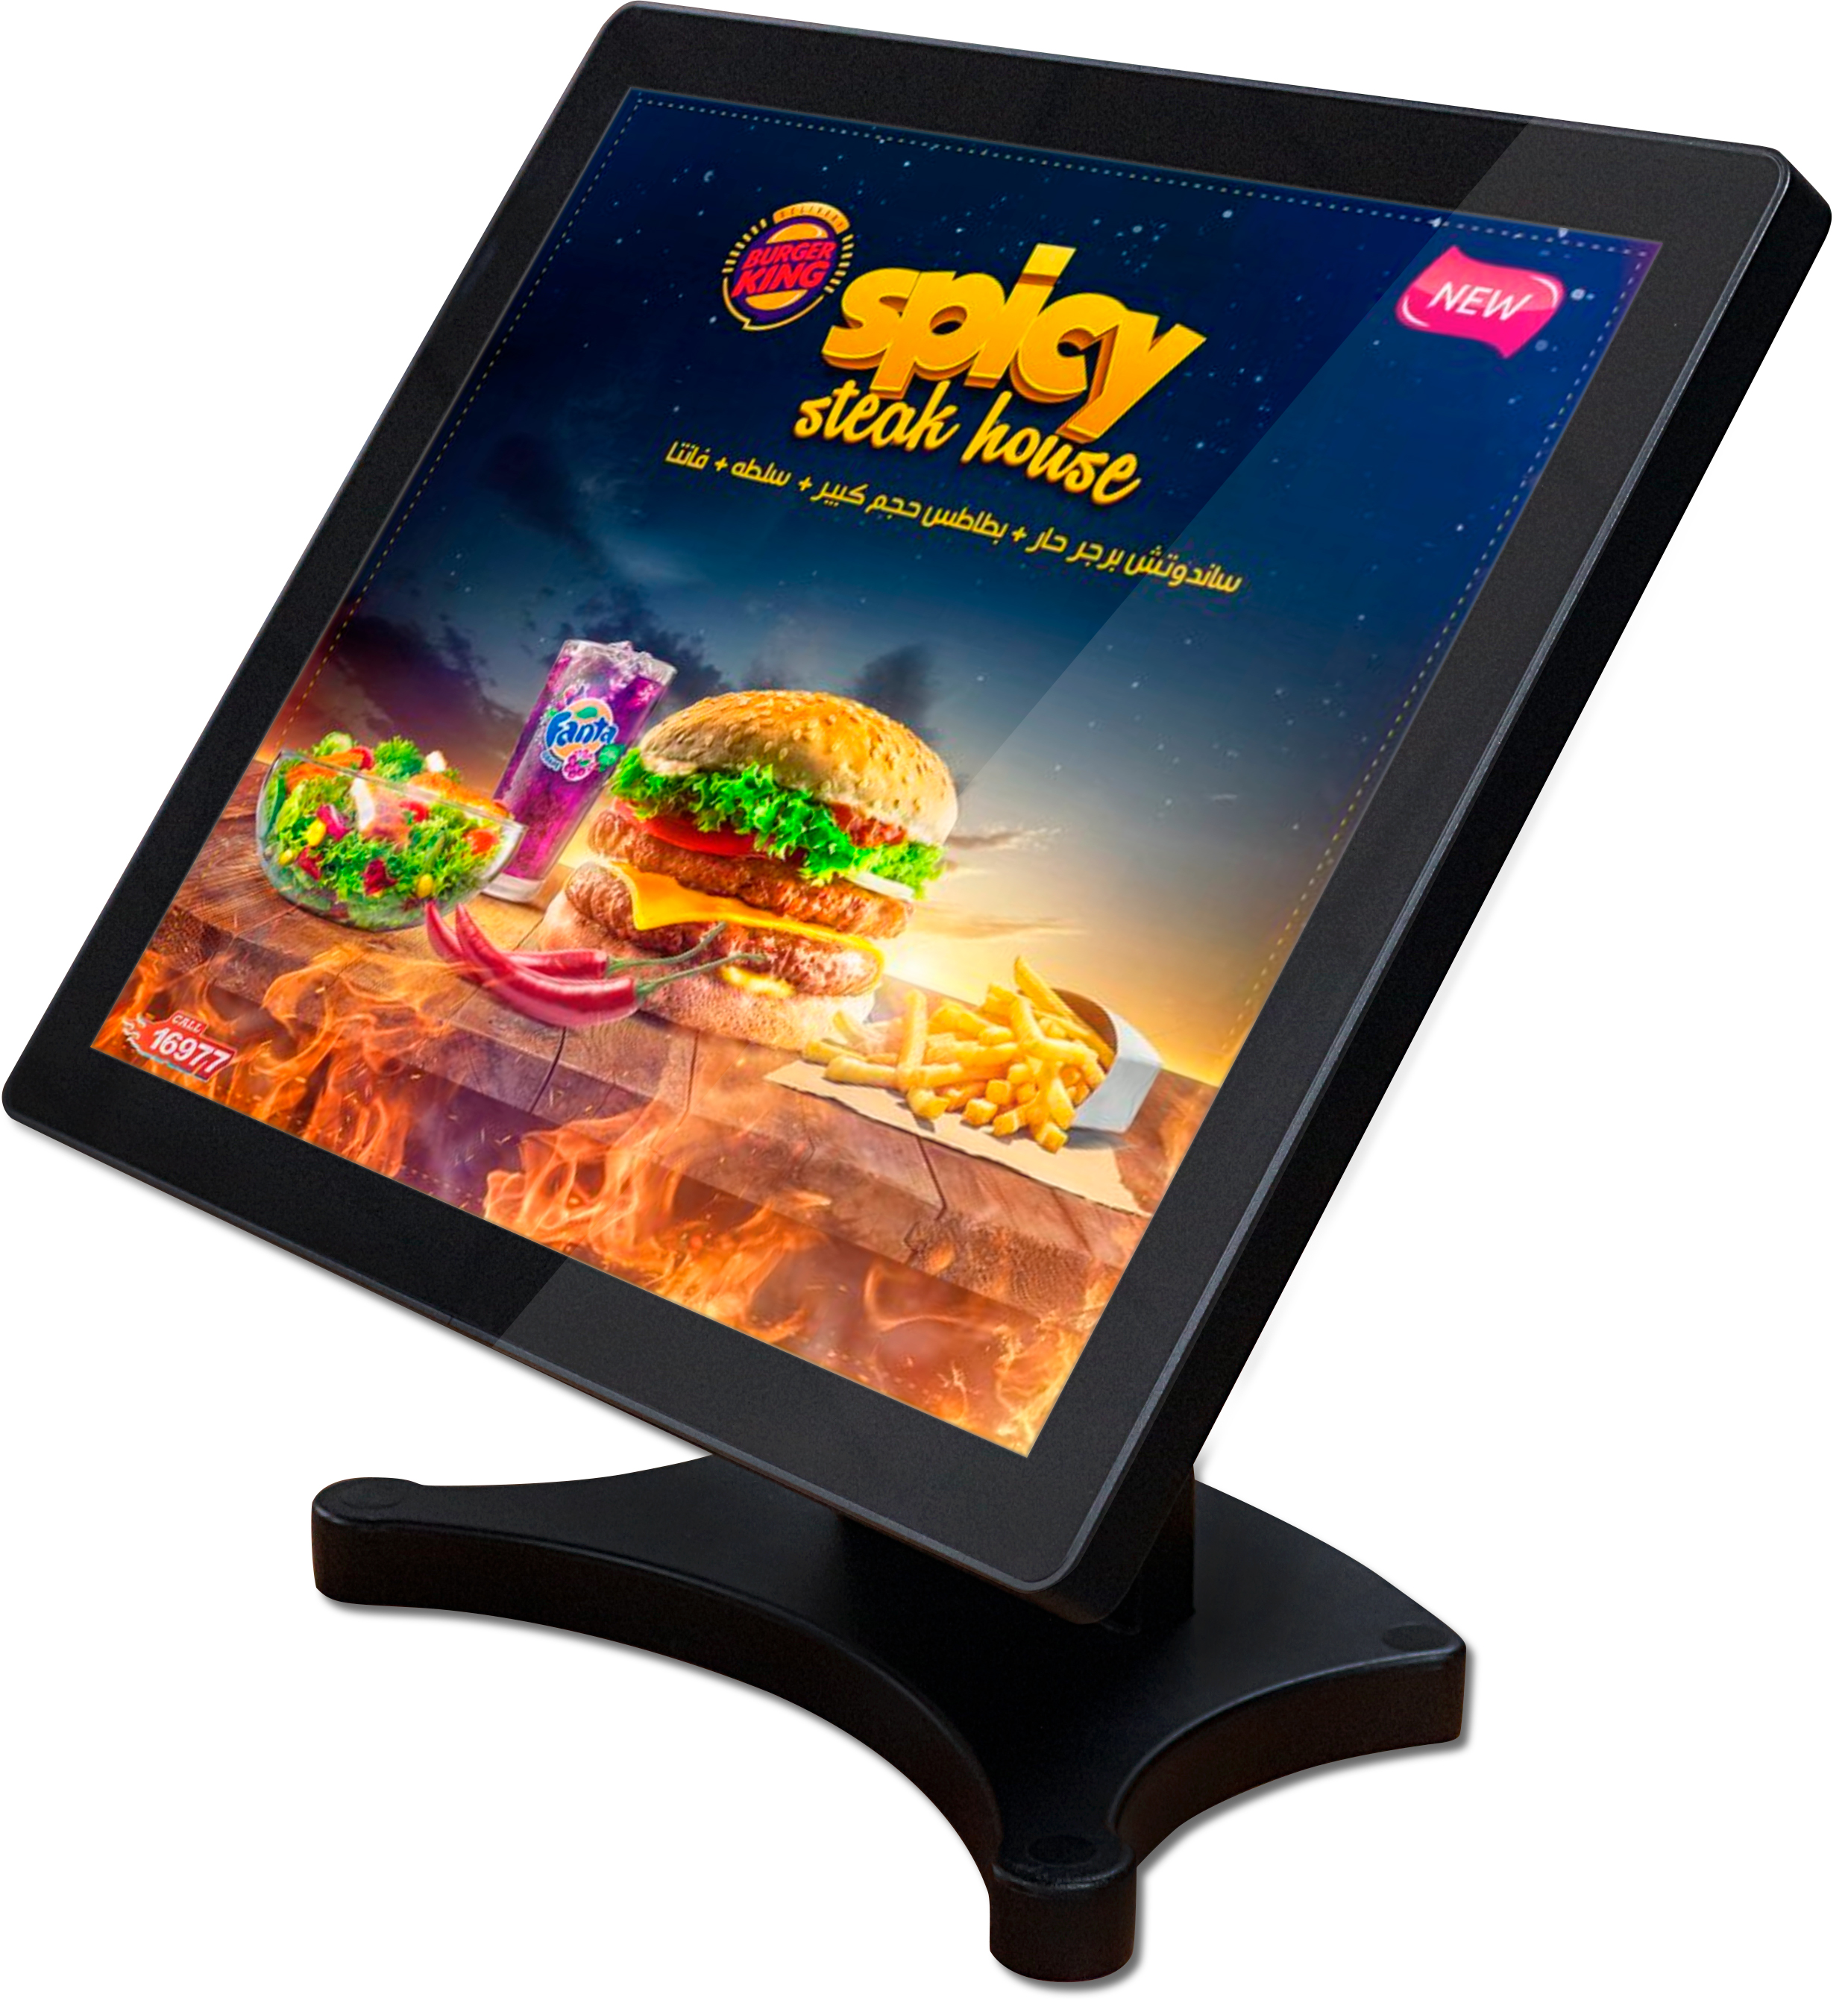 15 inch digital signagure picture IPS capacitive touch screen monitor